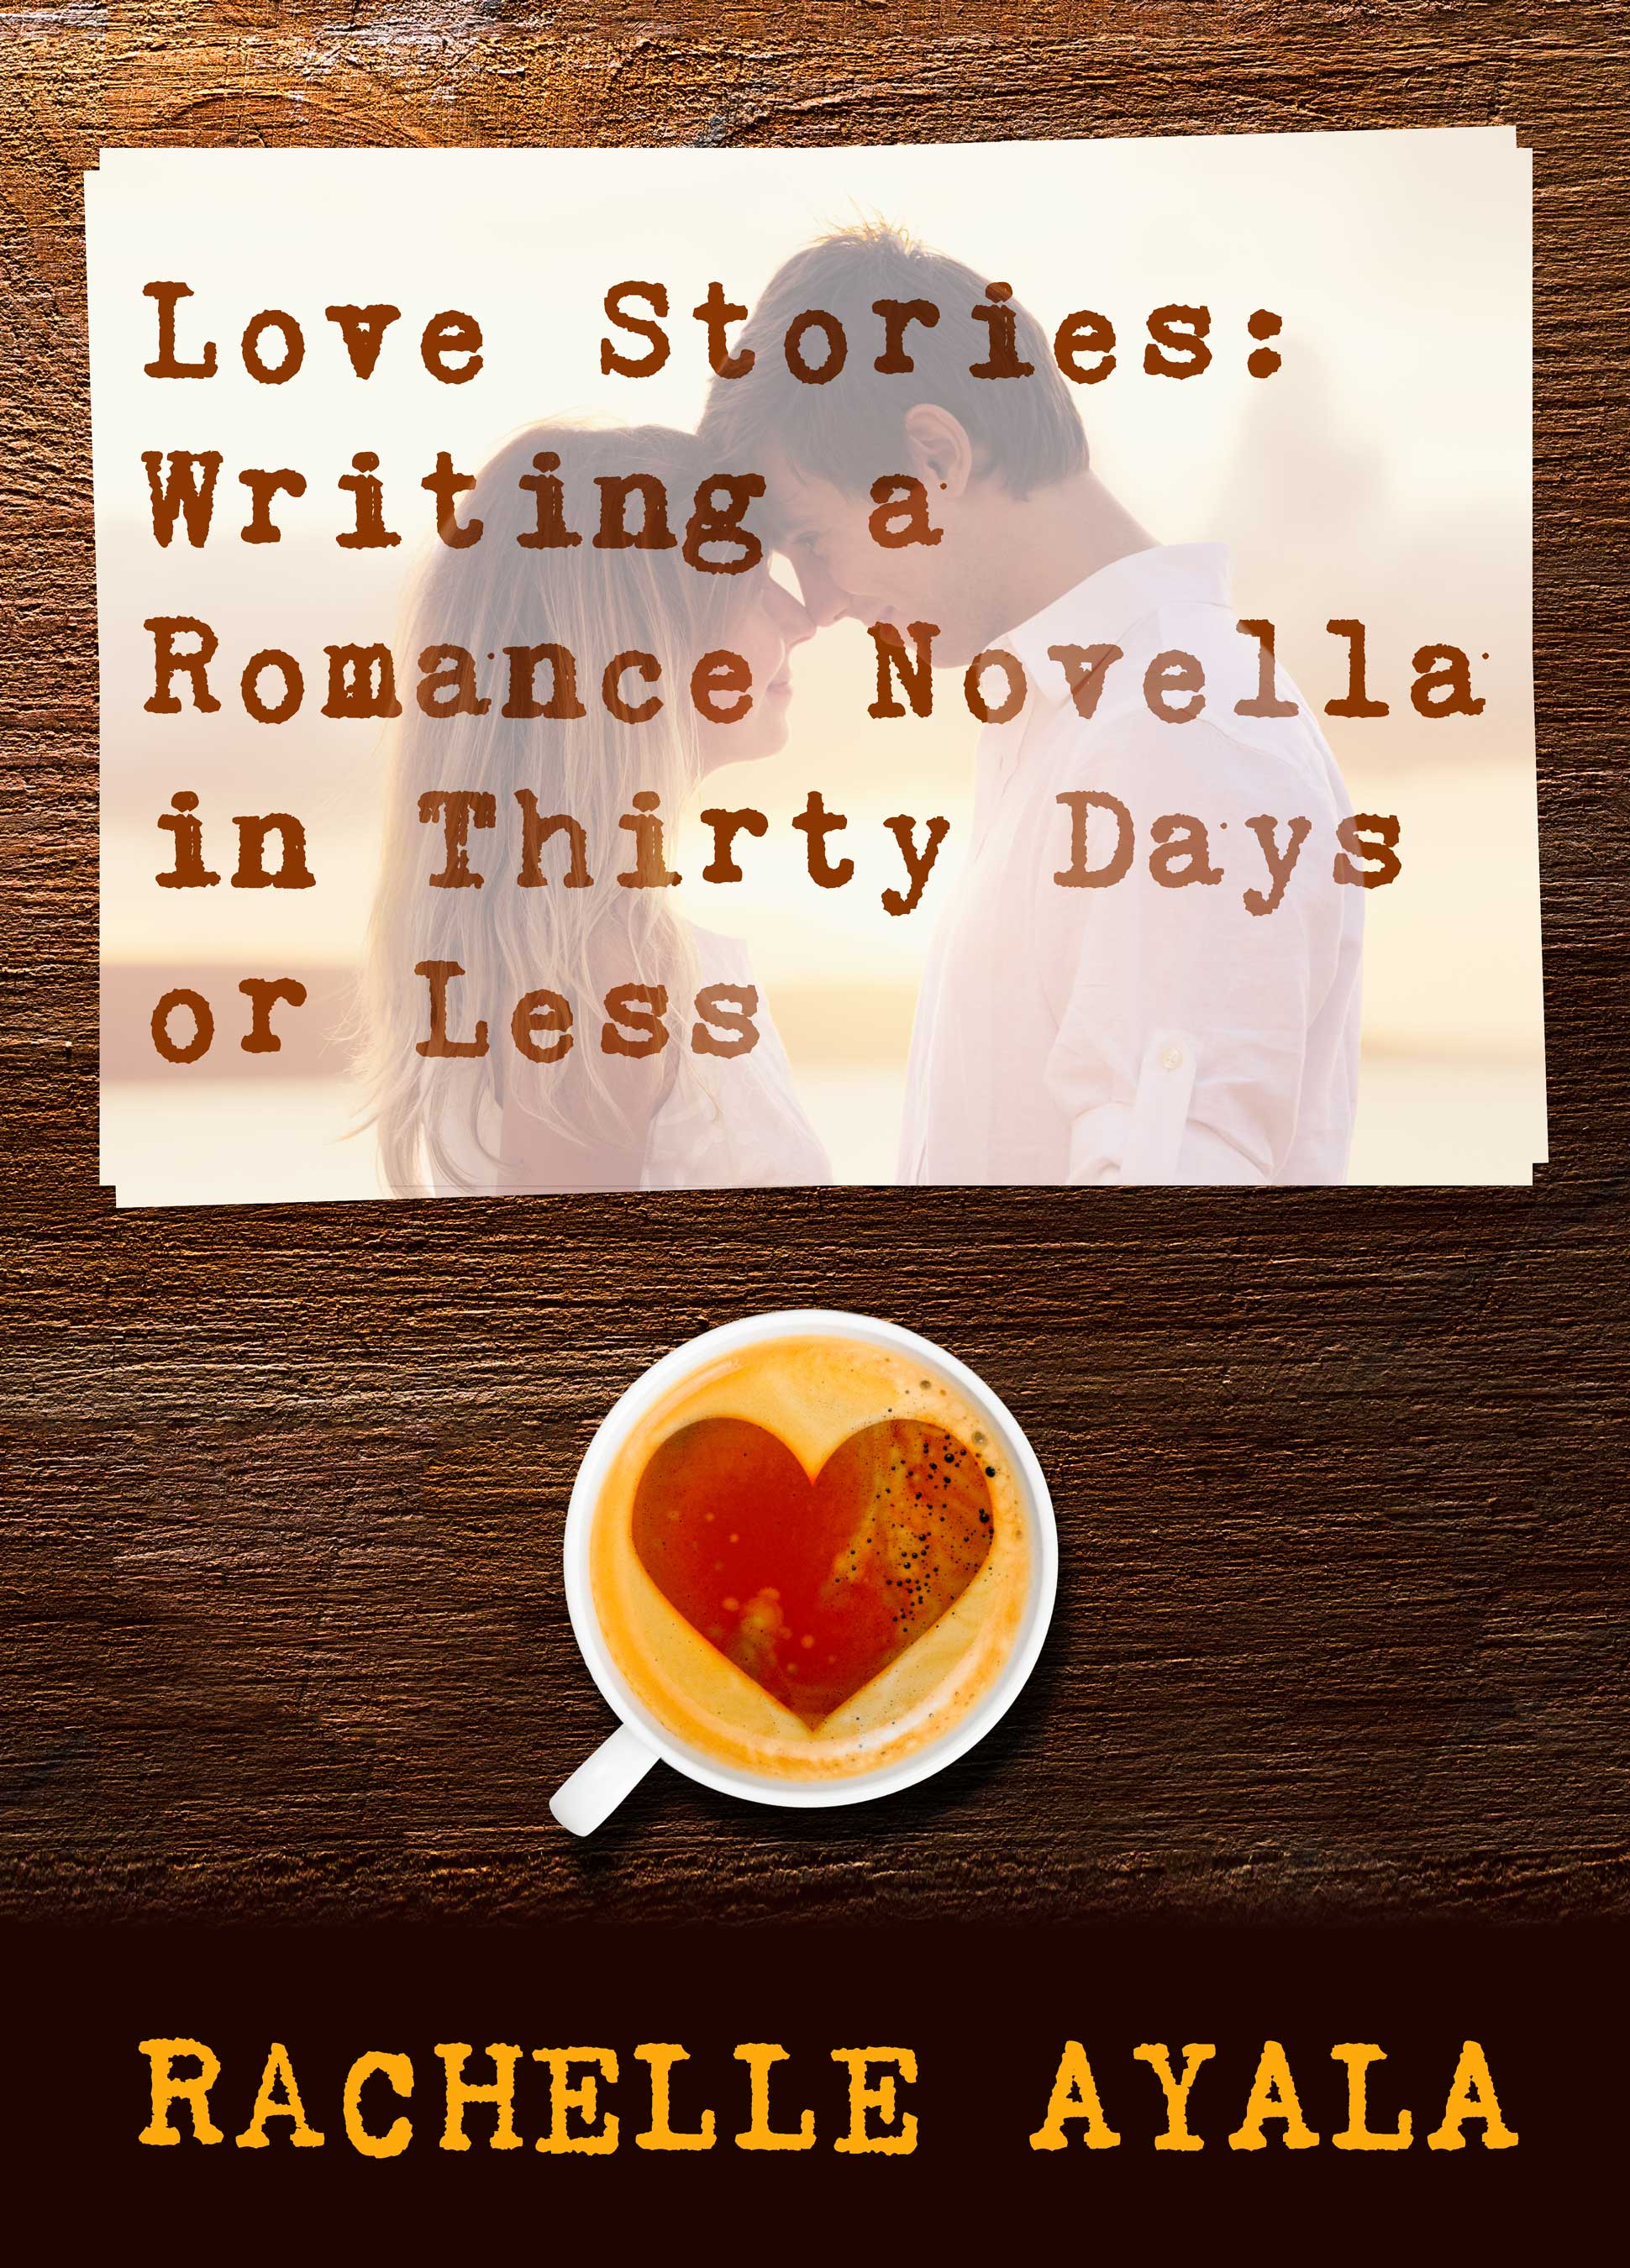 Love stories: writing a romance novella in thirty days or less